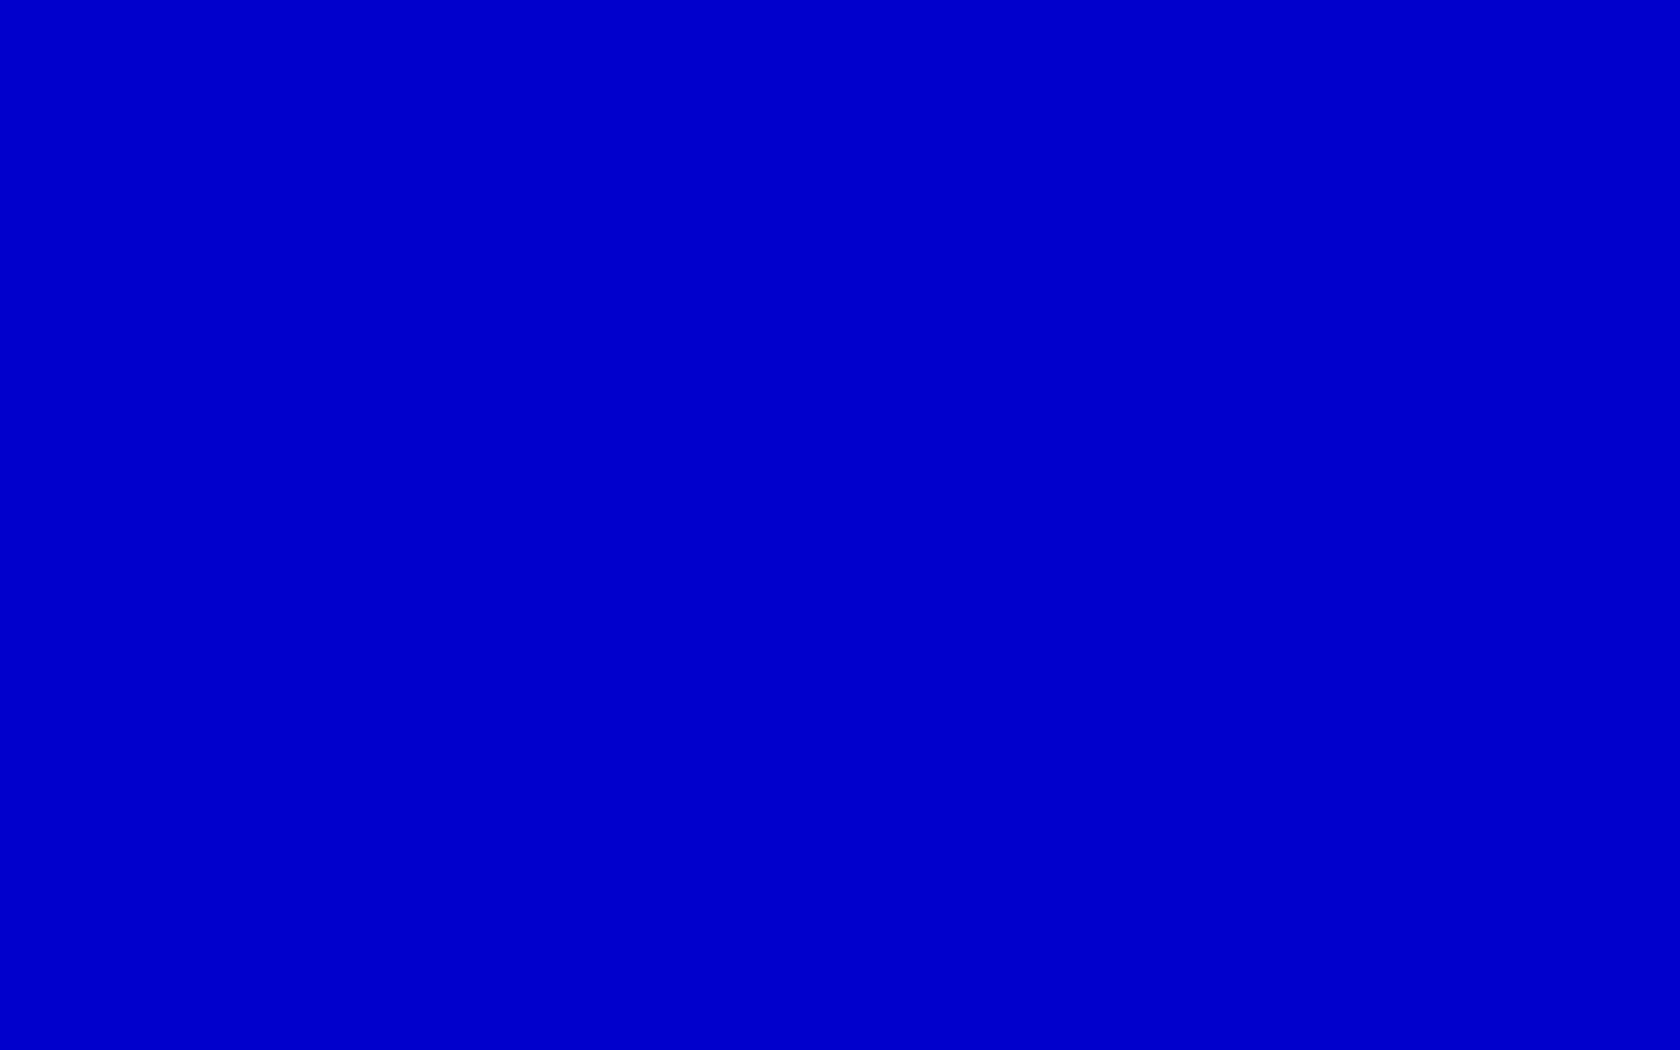 1680x1050 Medium Blue Solid Color Background